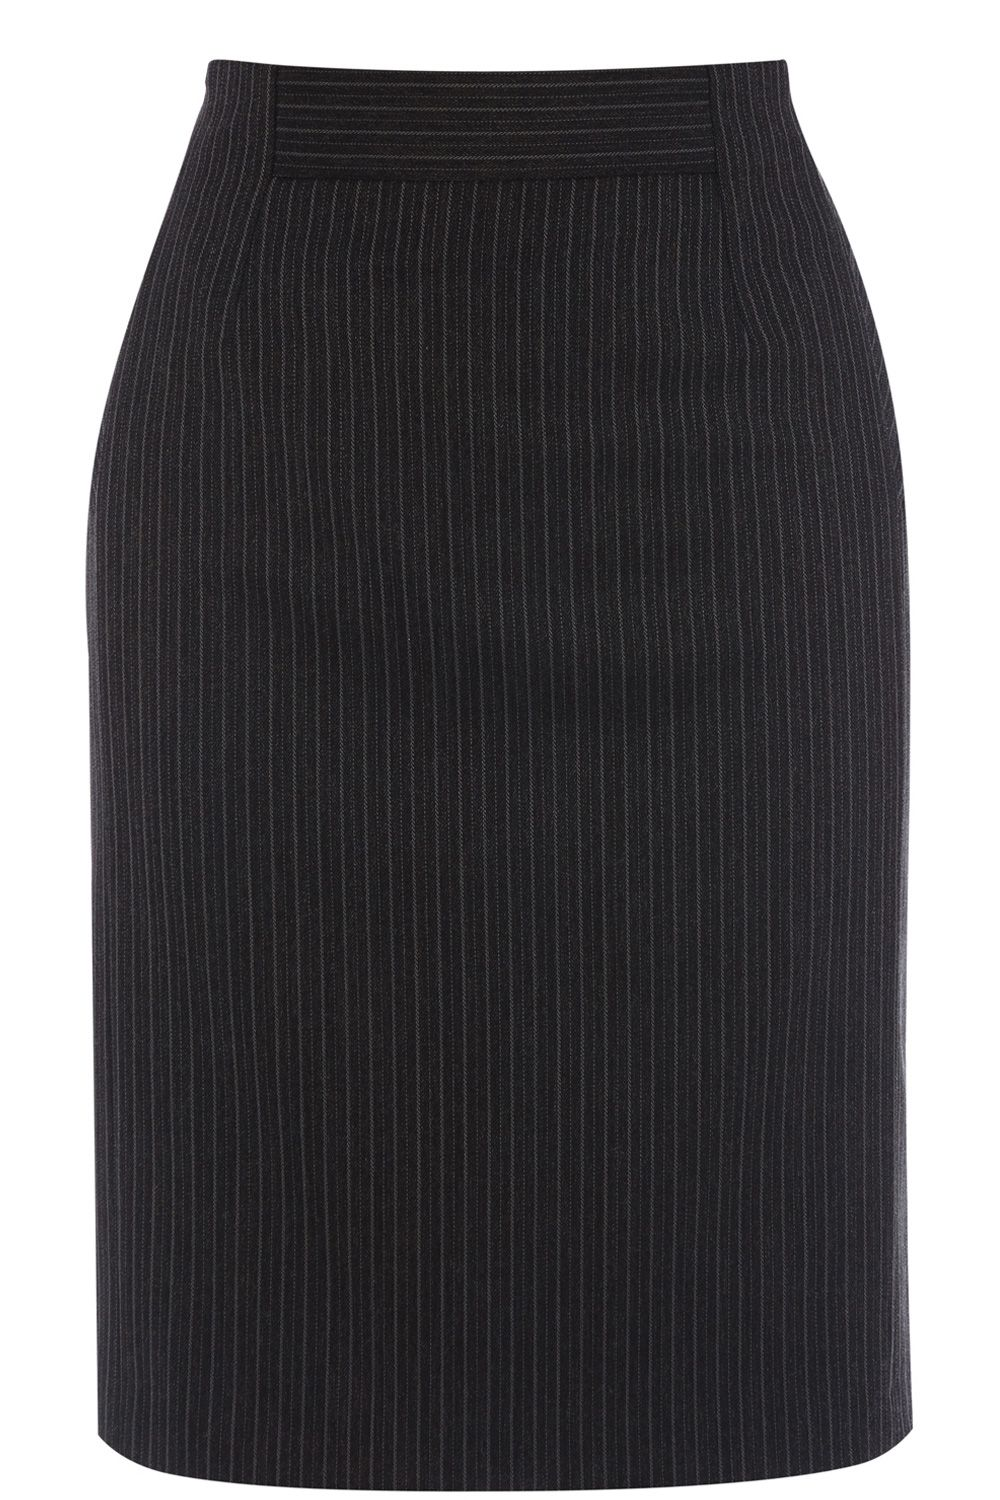 Multi pinstripe skirt